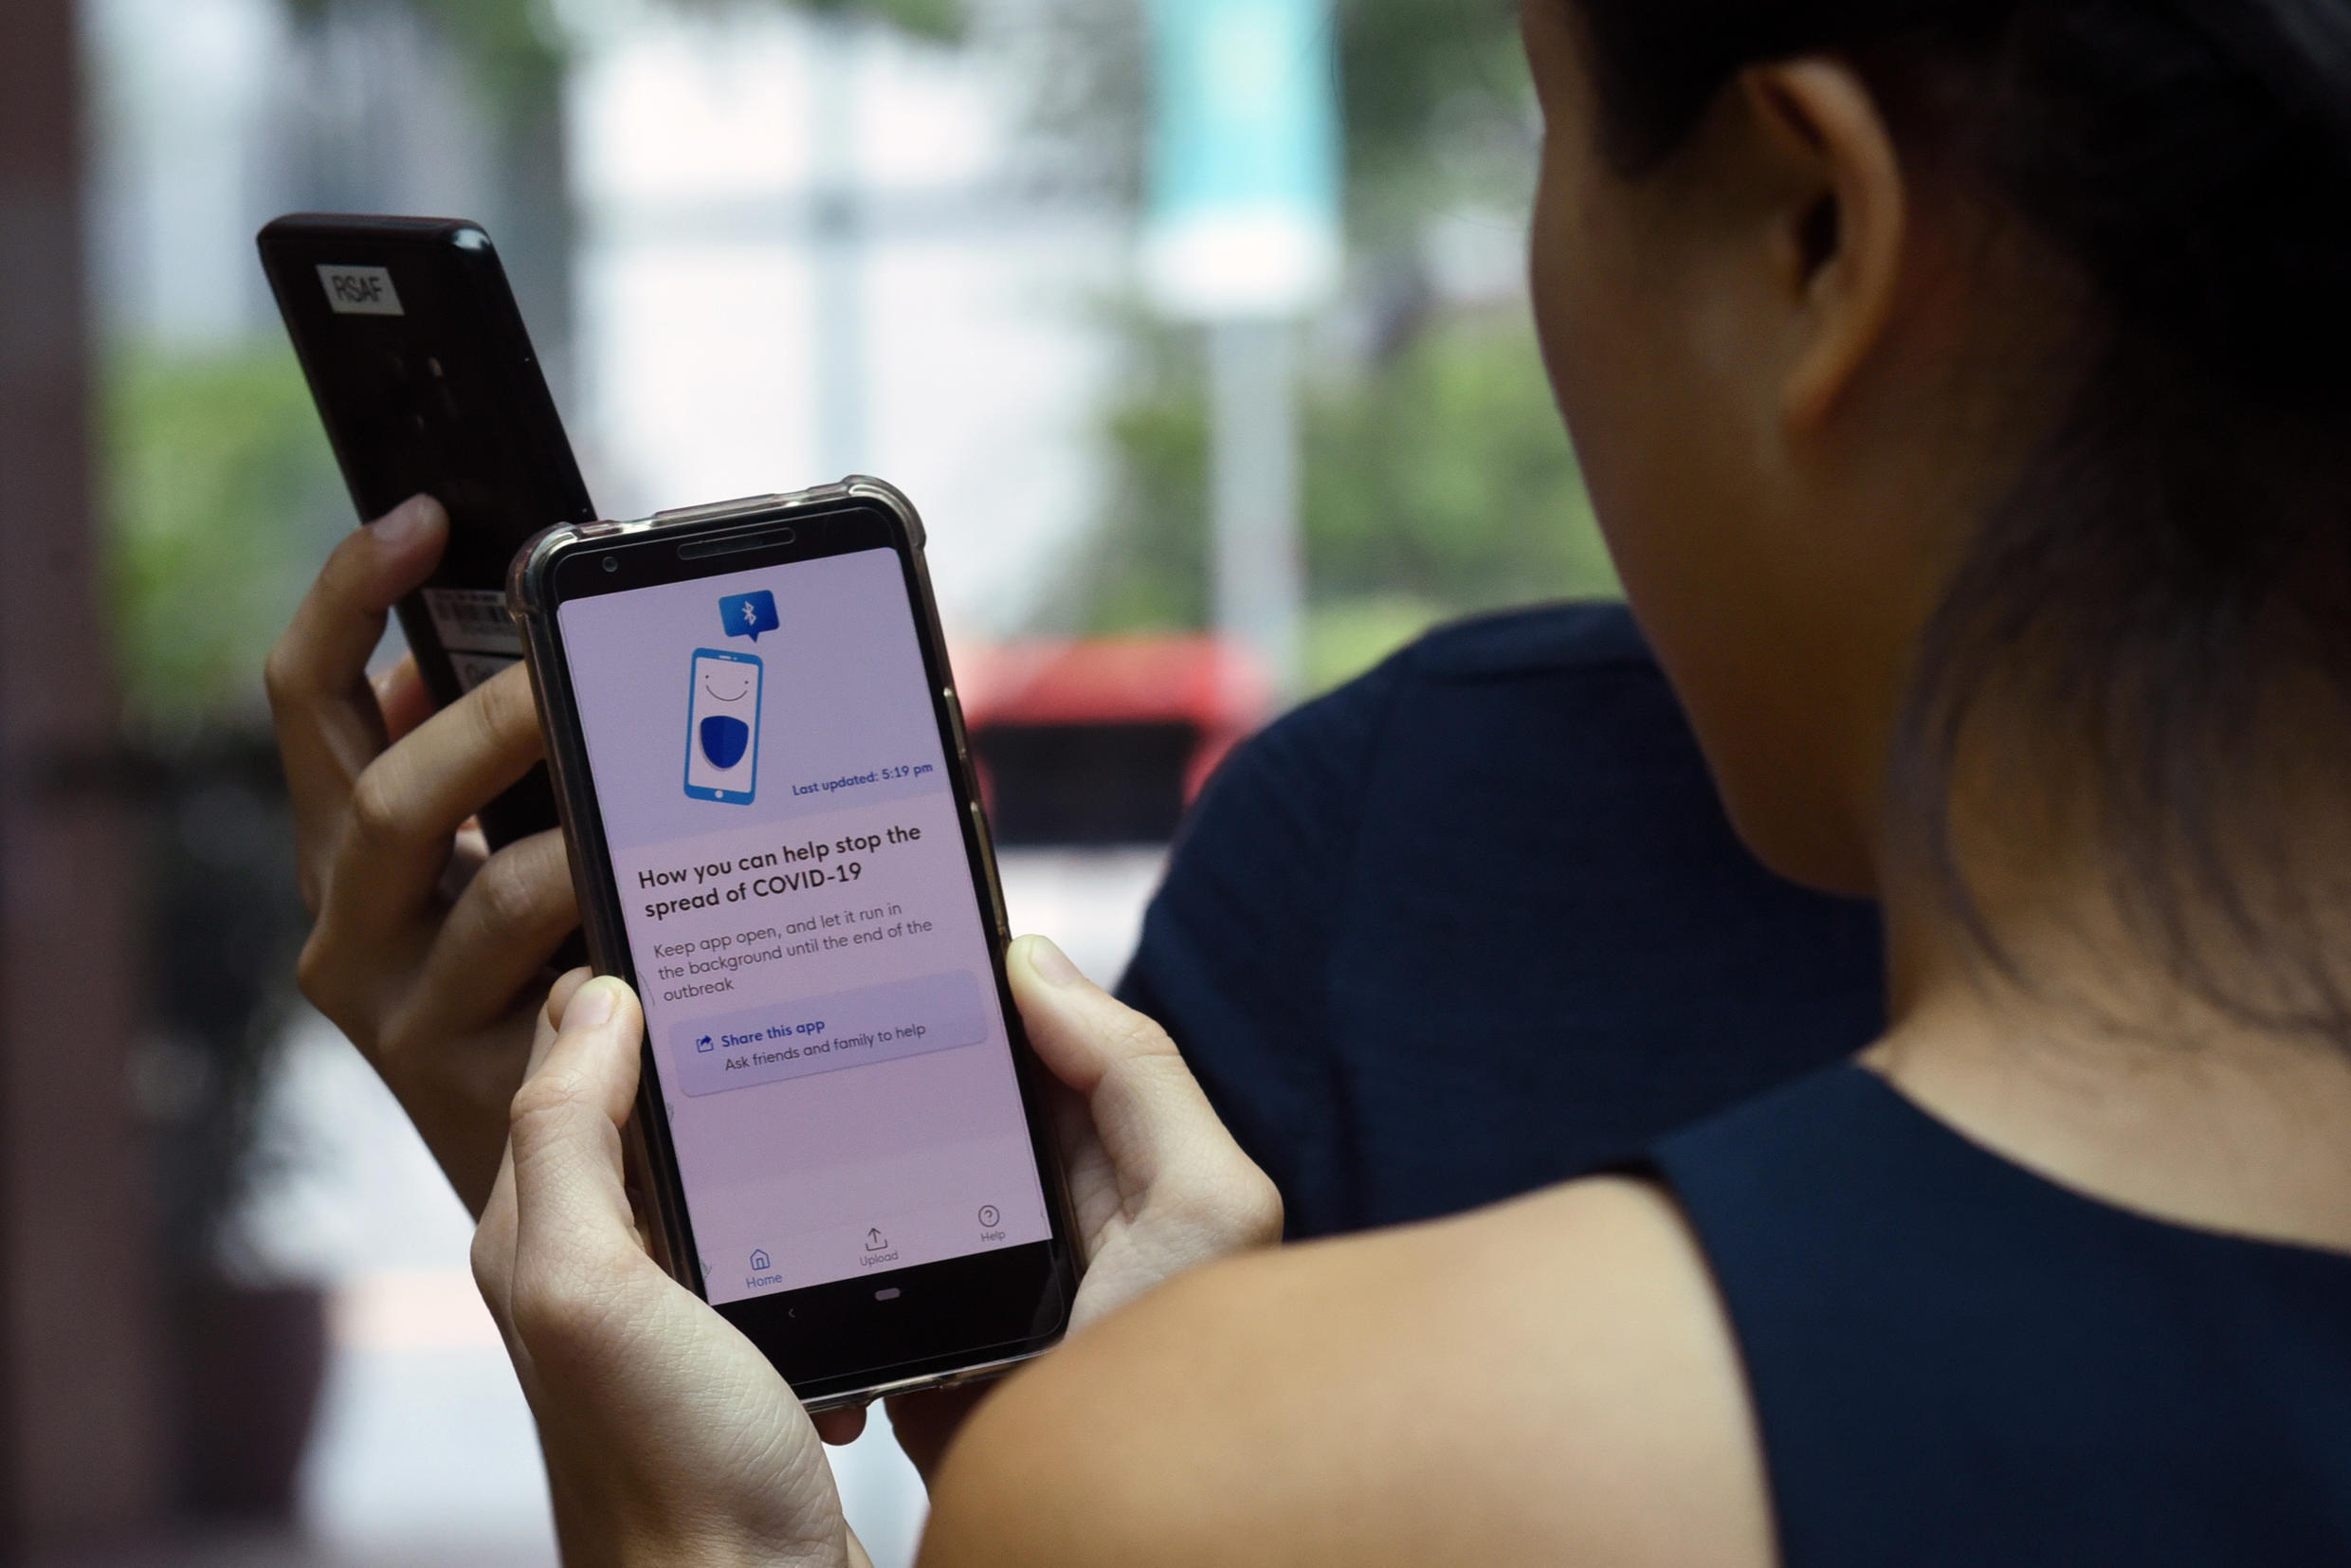 Smartphones can help the effort to contain the coronavirus, but do we have to let Big Brother look over our shoulder?